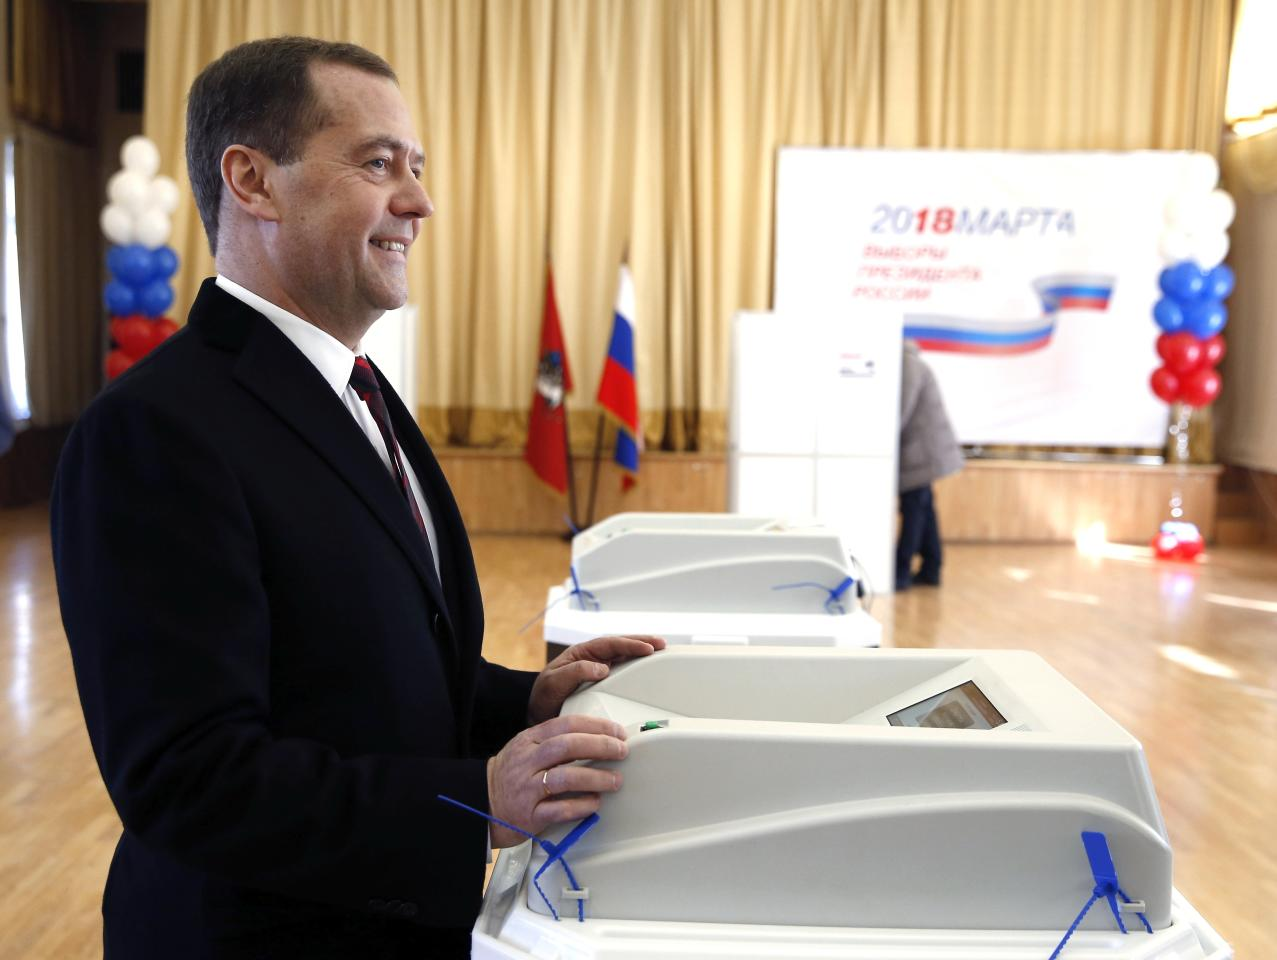 Russian Prime Minister Dmitry Medvedev votes in the Russian presidential election in Moscow, Russia, Sunday, March 18, 2018. Vladimir Putin headed to an overwhelming win in Russia's presidential election Sunday, adding six years in the Kremlin for the man who has led the world's largest country for all of the 21st century. (Dmitry Astakhov, Sputnik, Government Pool Photo via AP)